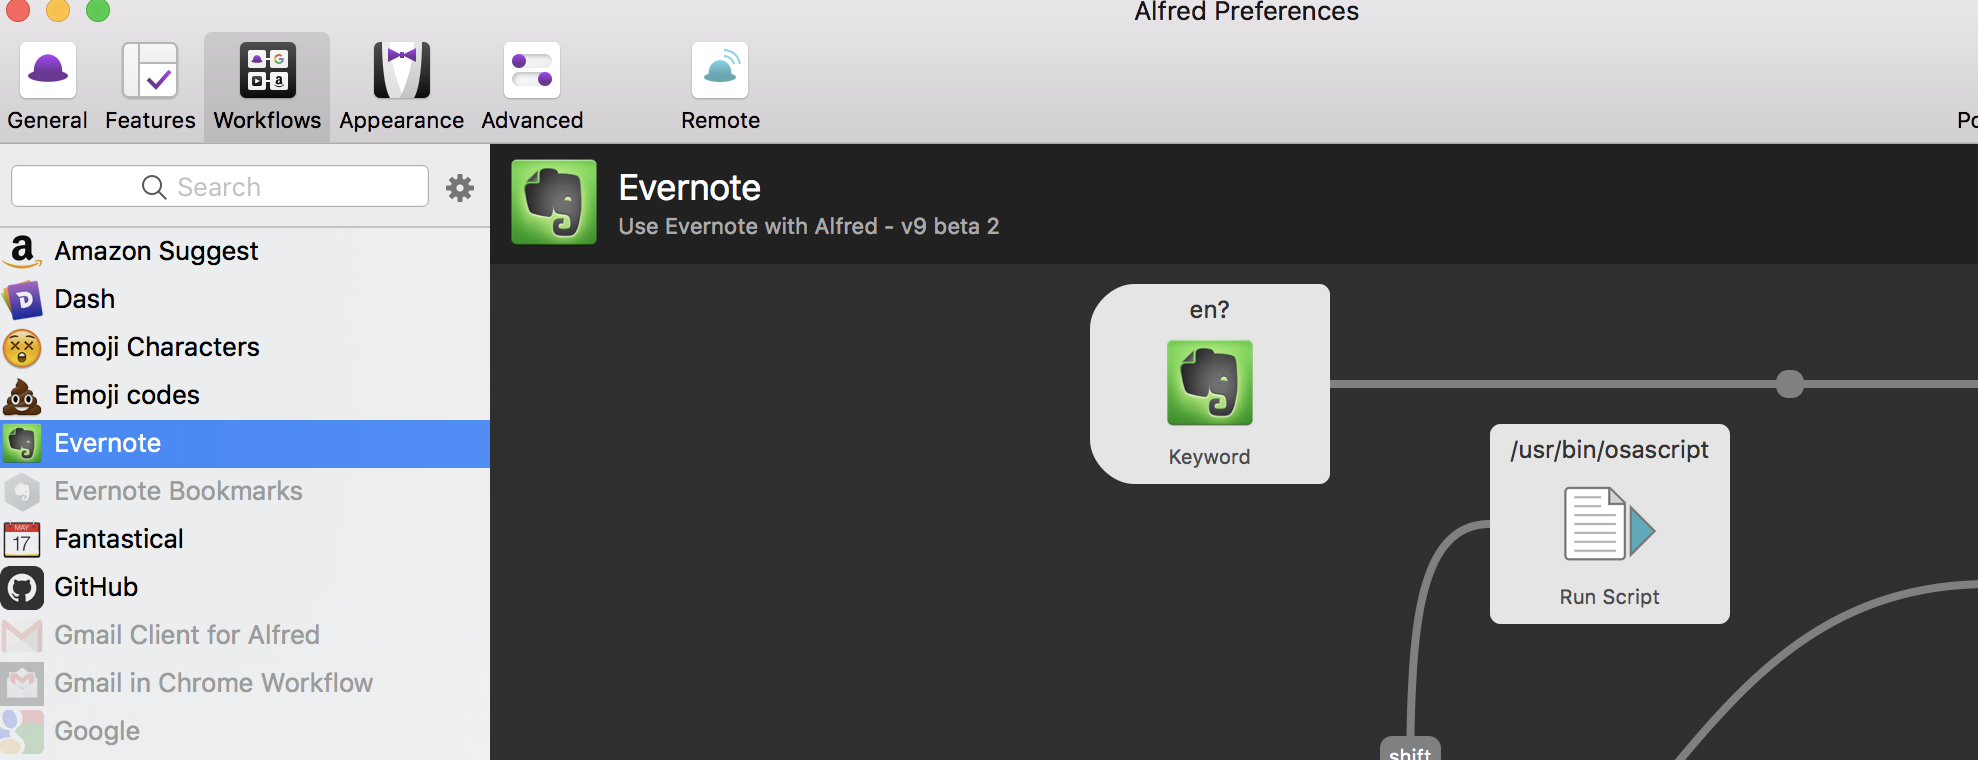 Evernote Workflow 9 beta 4 (Alfred 4) - Page 27 - Share your